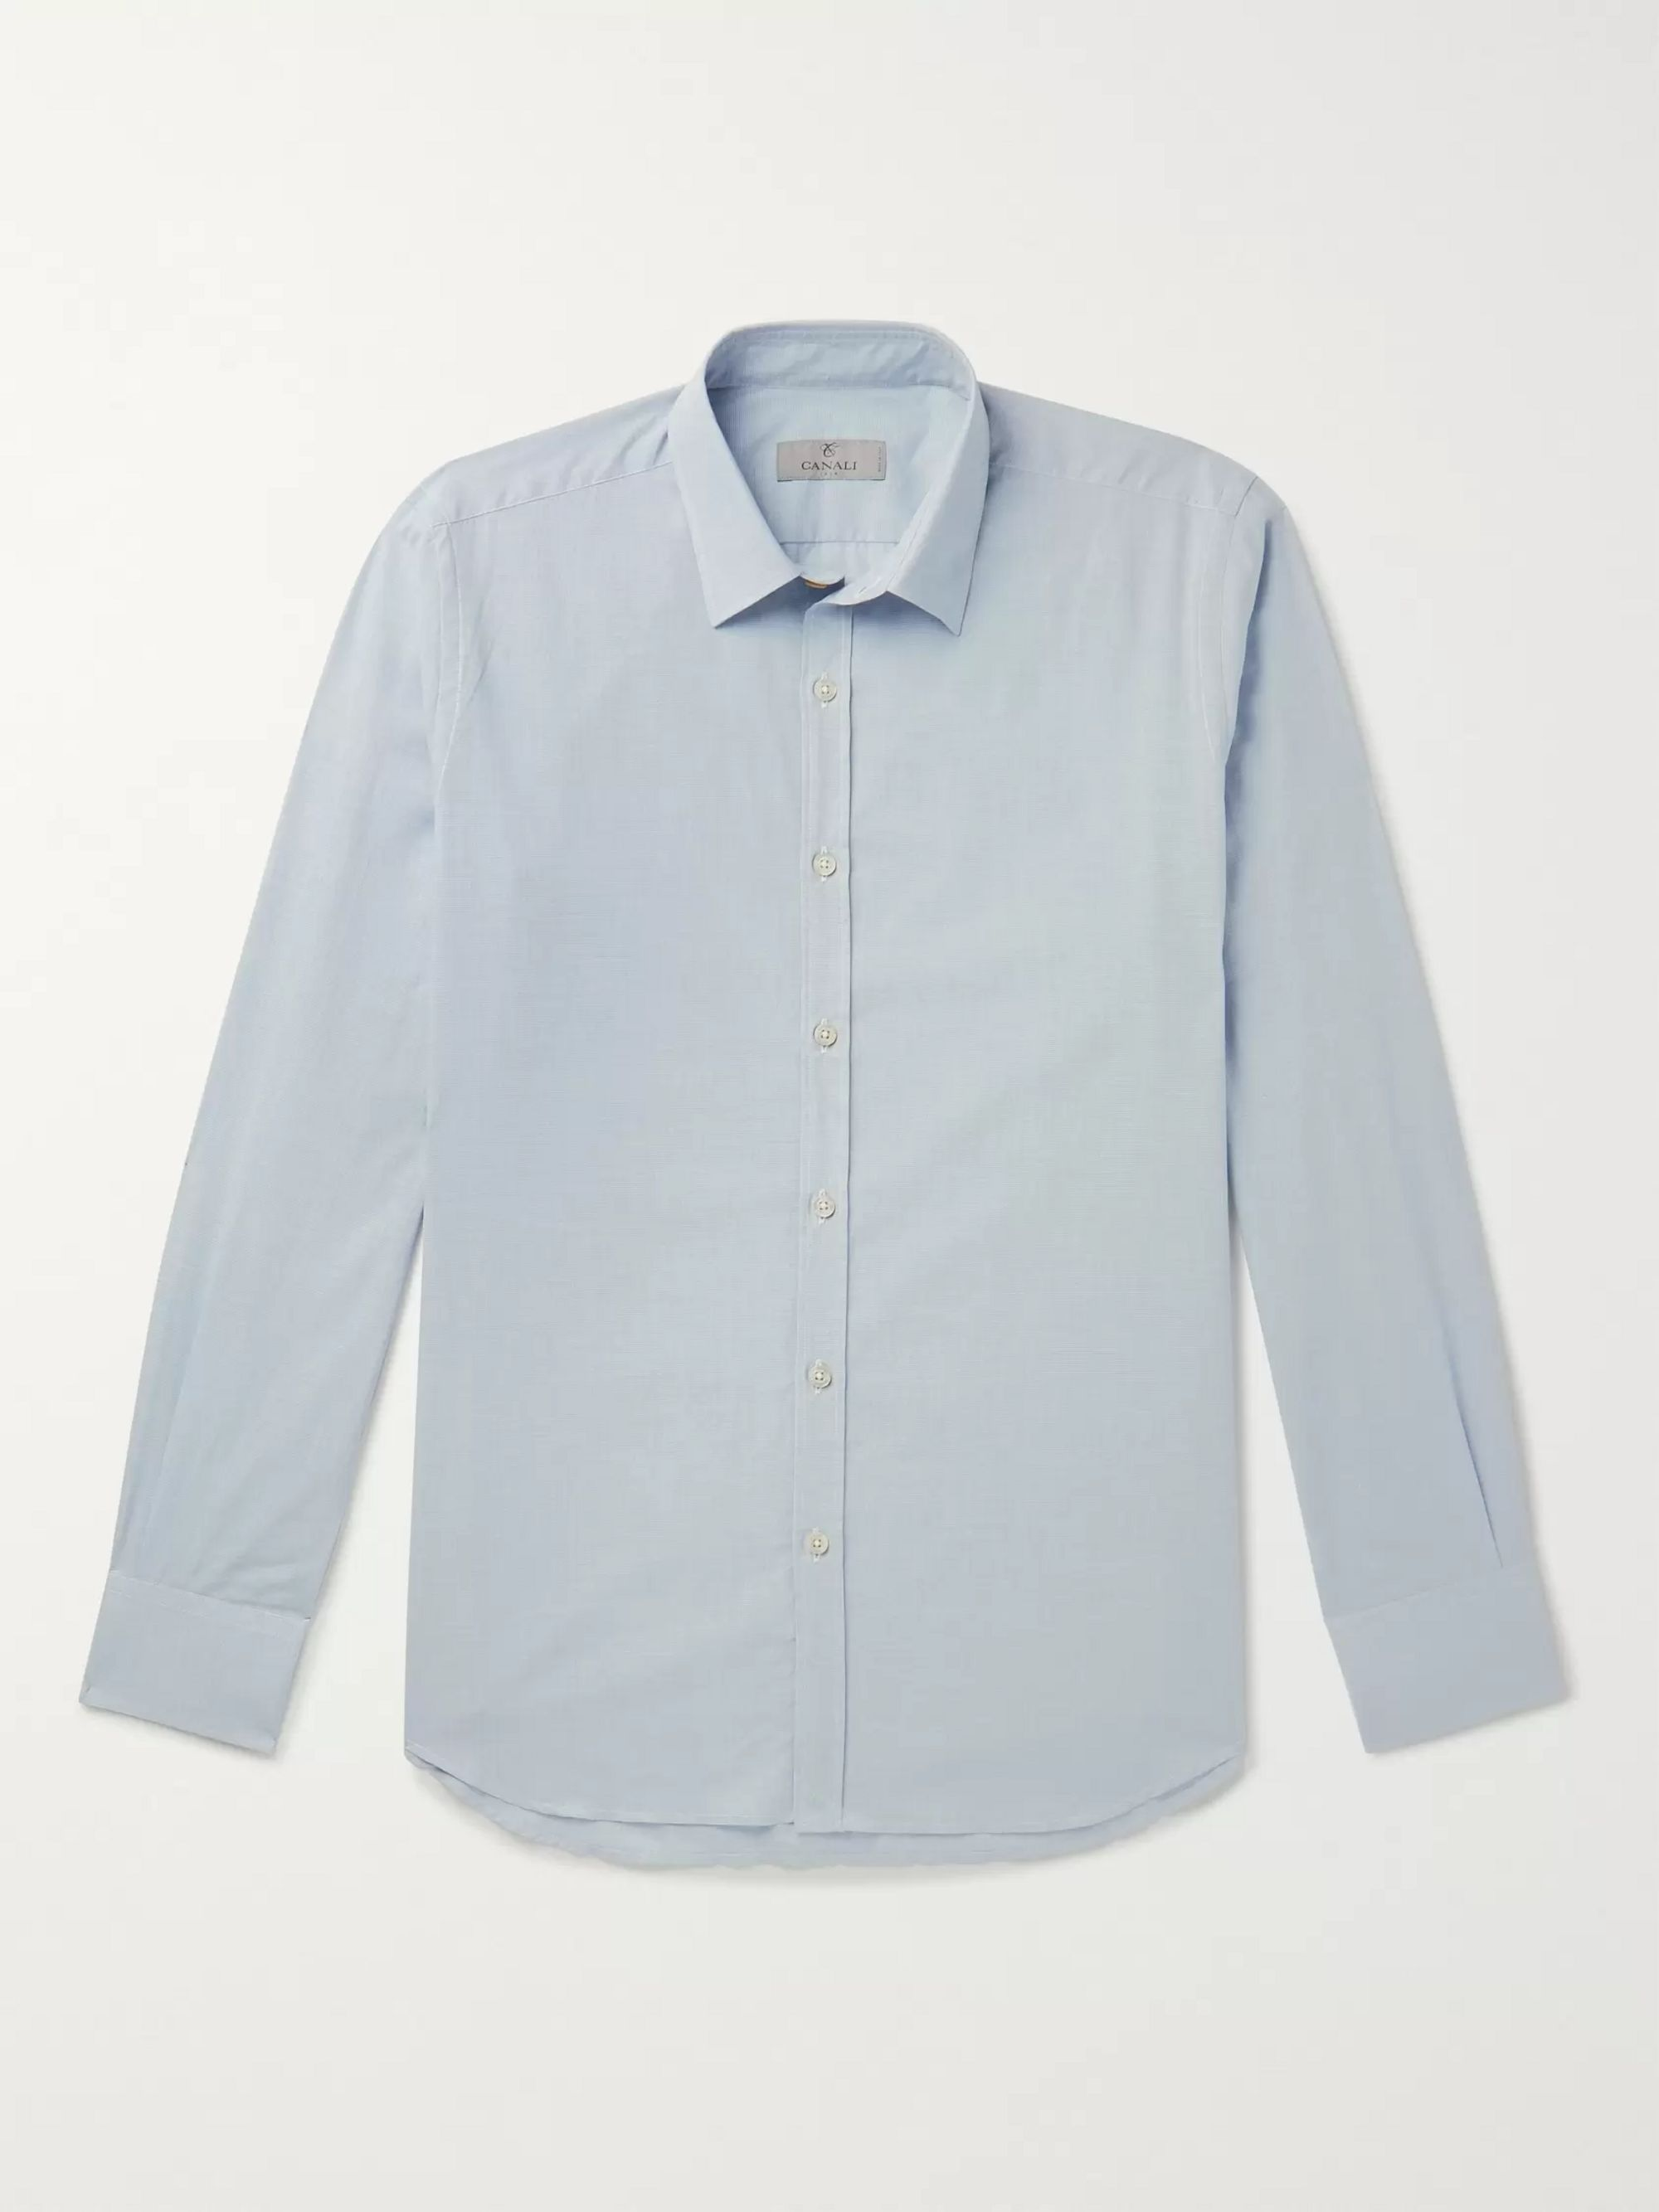 Canali Slim-Fit Puppytooth Cotton Shirt